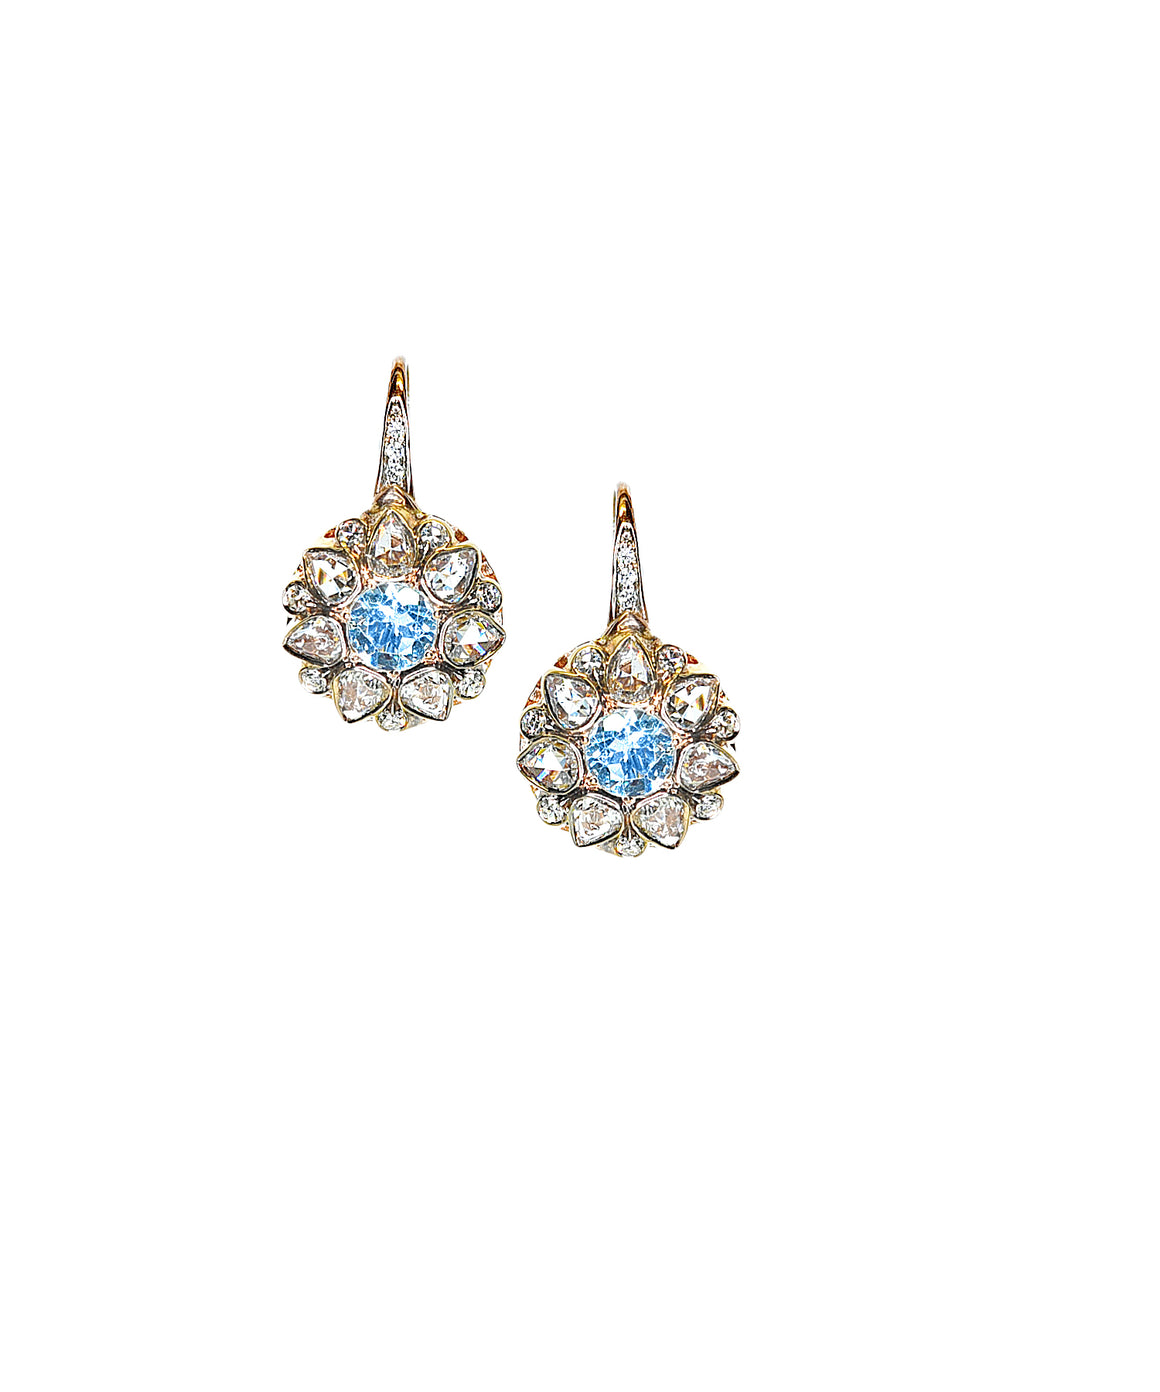 Aqua and Rose-Cut Diamond Drop Earrings - Lesley Ann Jewels